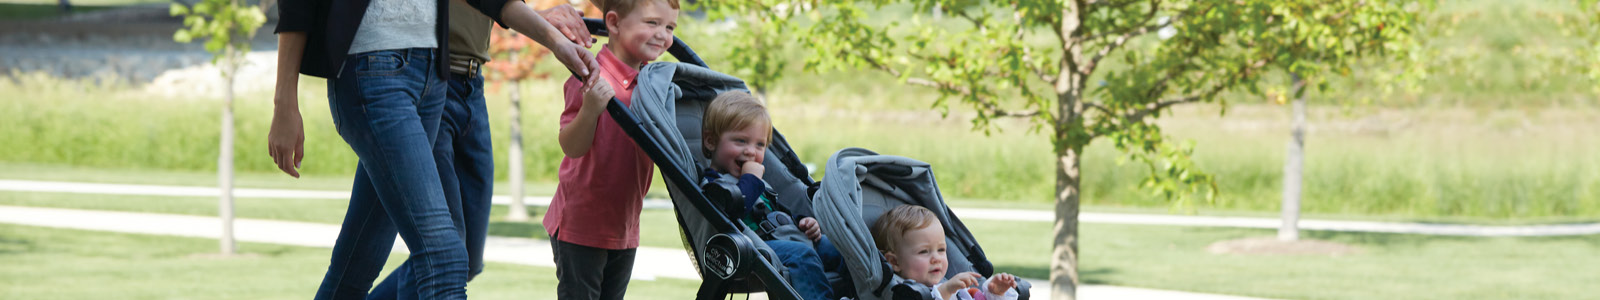 Baby Jogger's banner